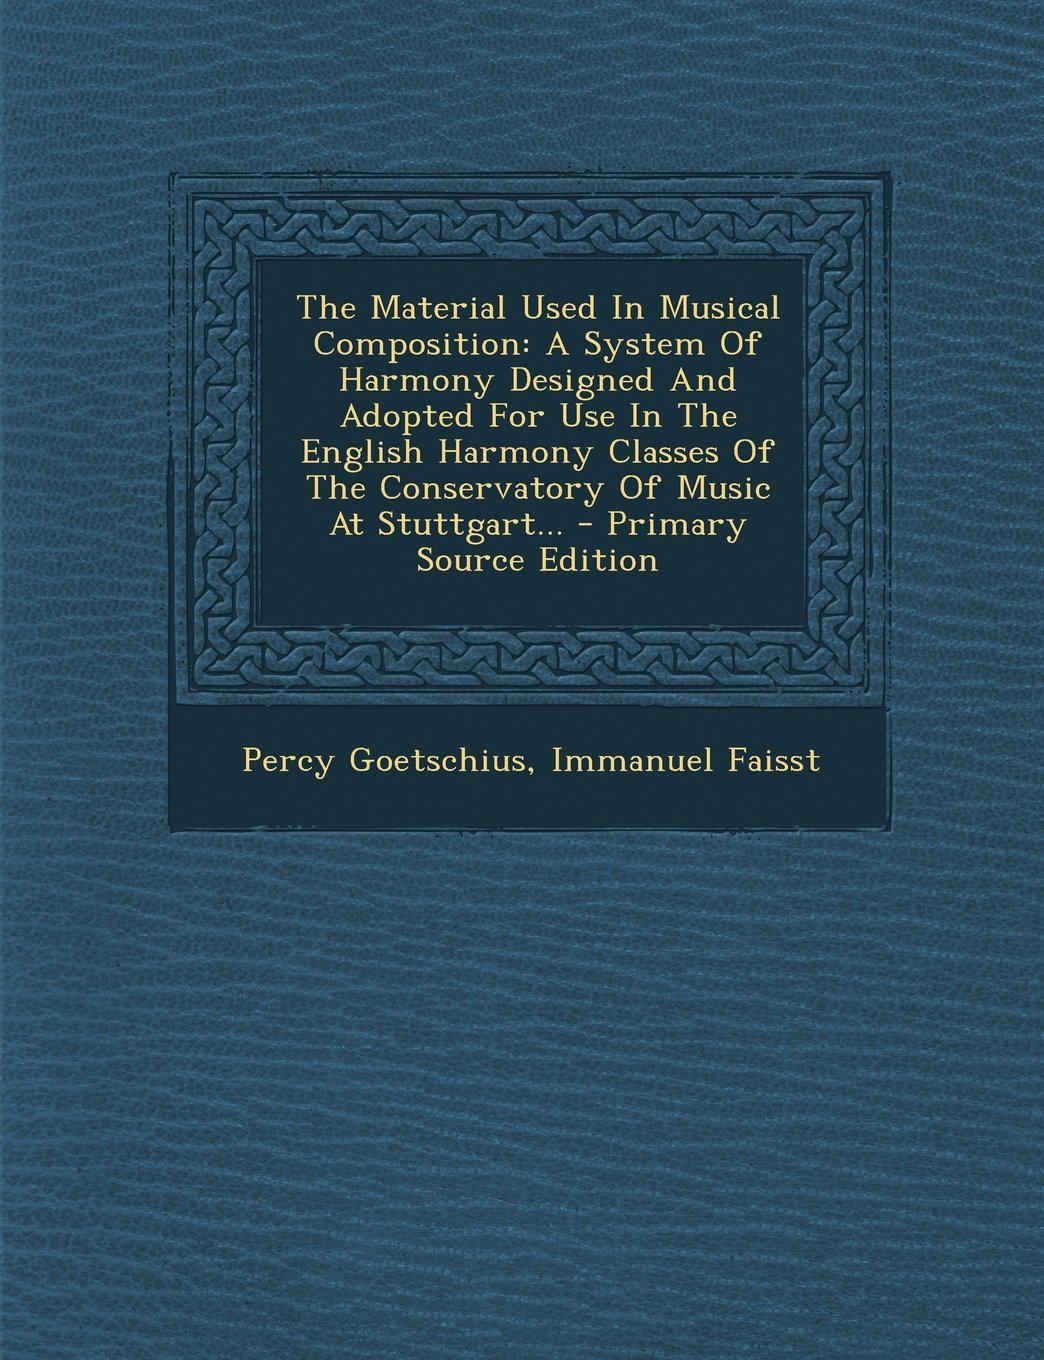 Download The Material Used In Musical Composition: A System Of Harmony Designed And Adopted For Use In The English Harmony Classes Of The Conservatory Of Music At Stuttgart... - Primary Source Edition pdf